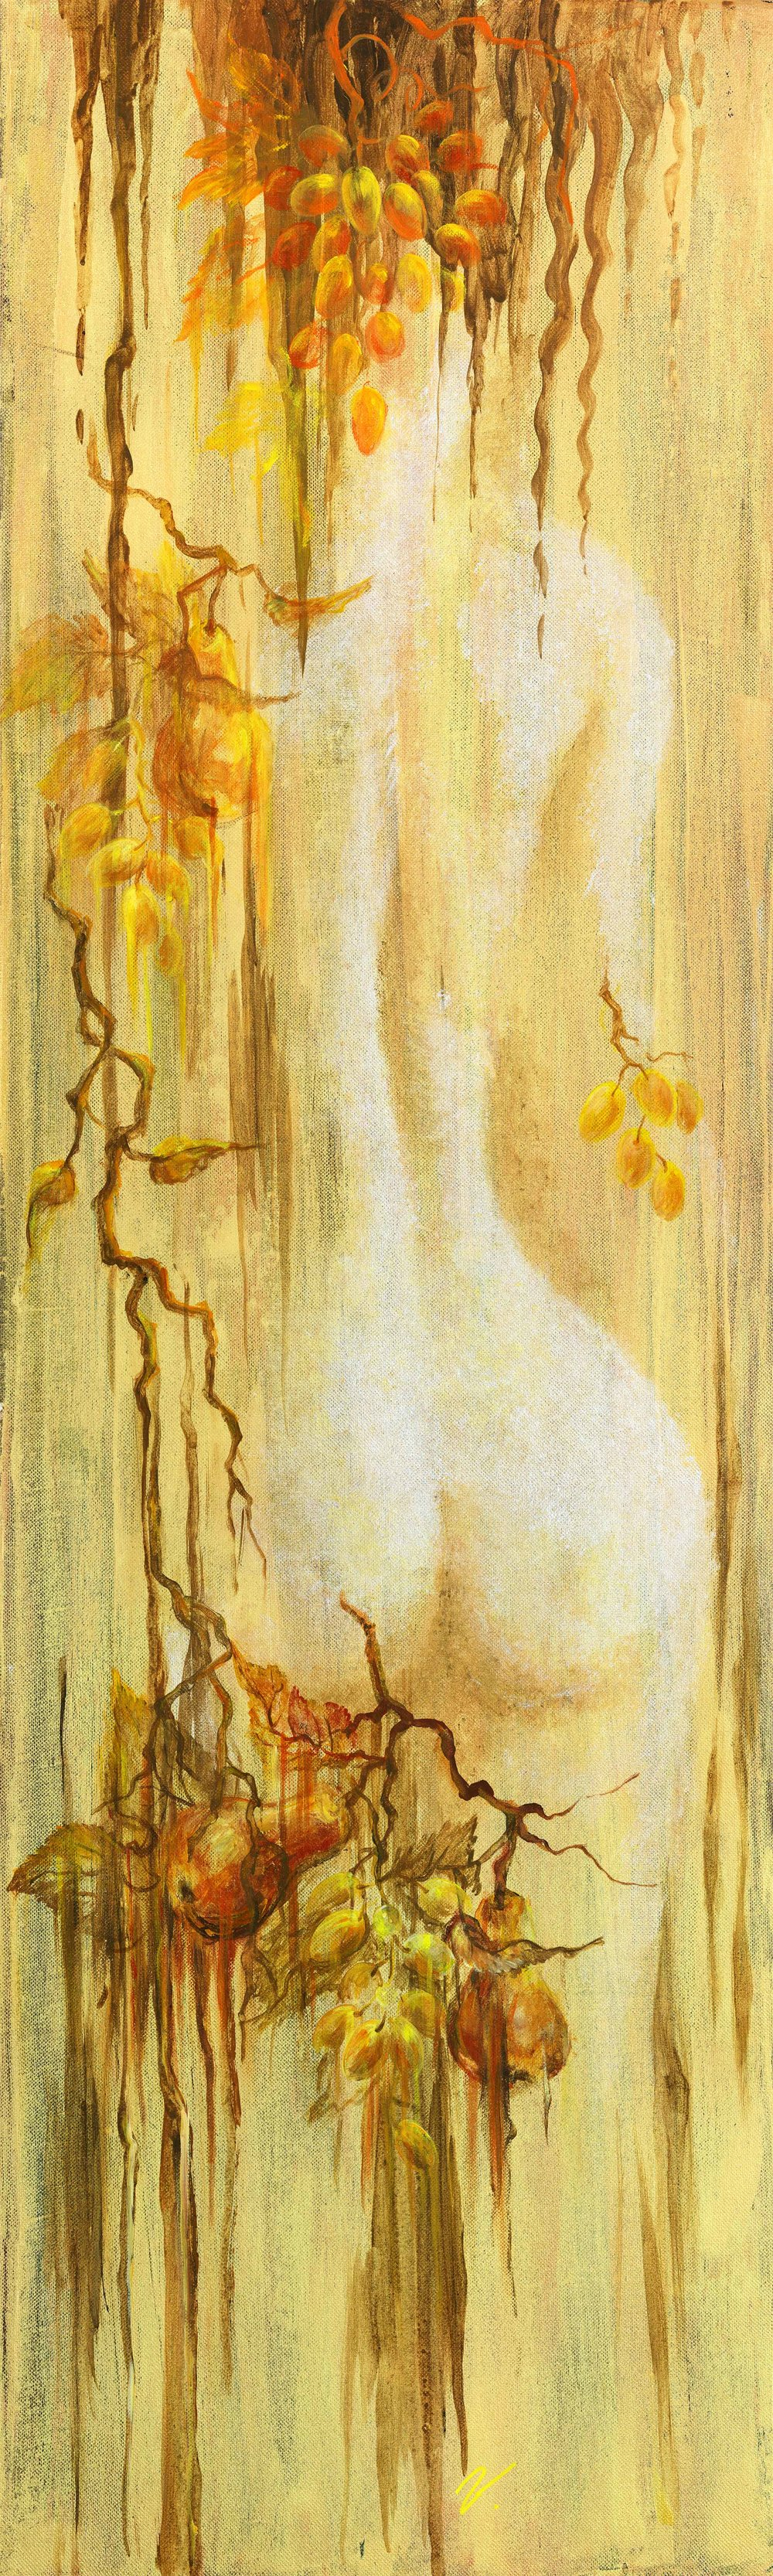 "Gold Dreams (2) 48""H x 16""W"